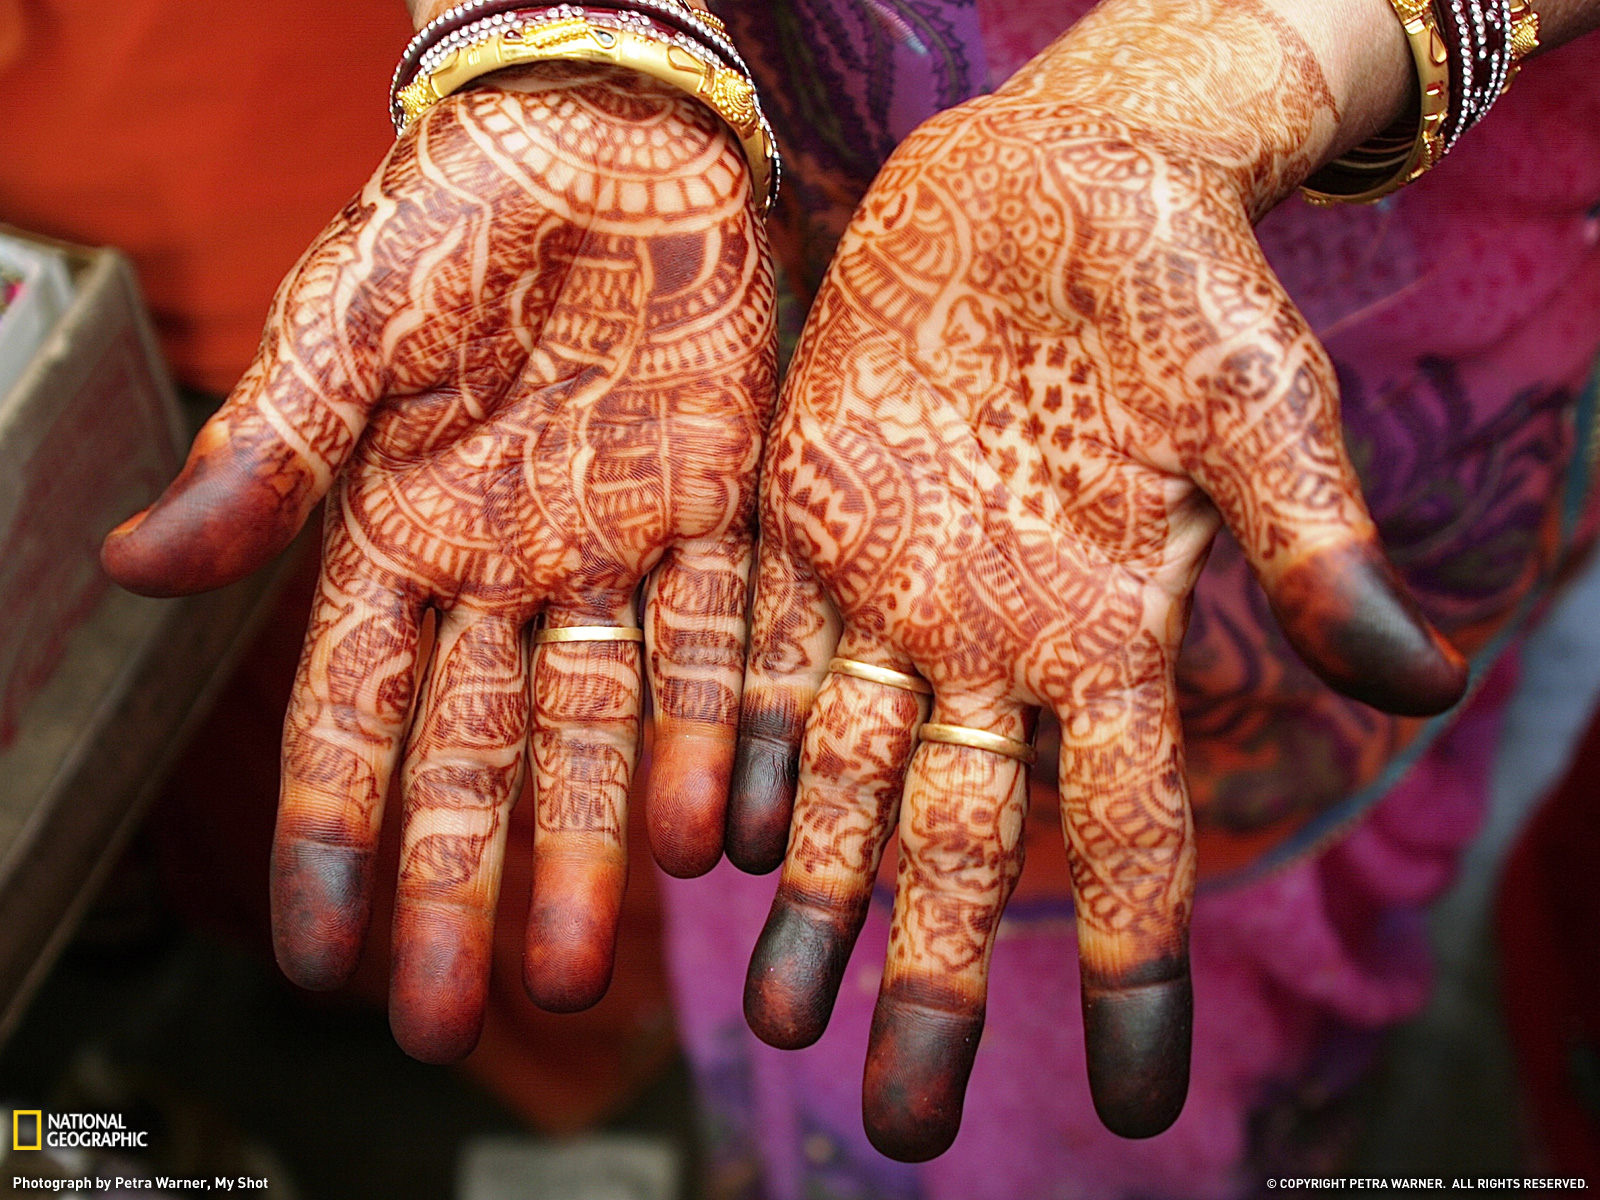 Henna Hands Photo India Wallpaper National Geographic Photo of 1600x1200